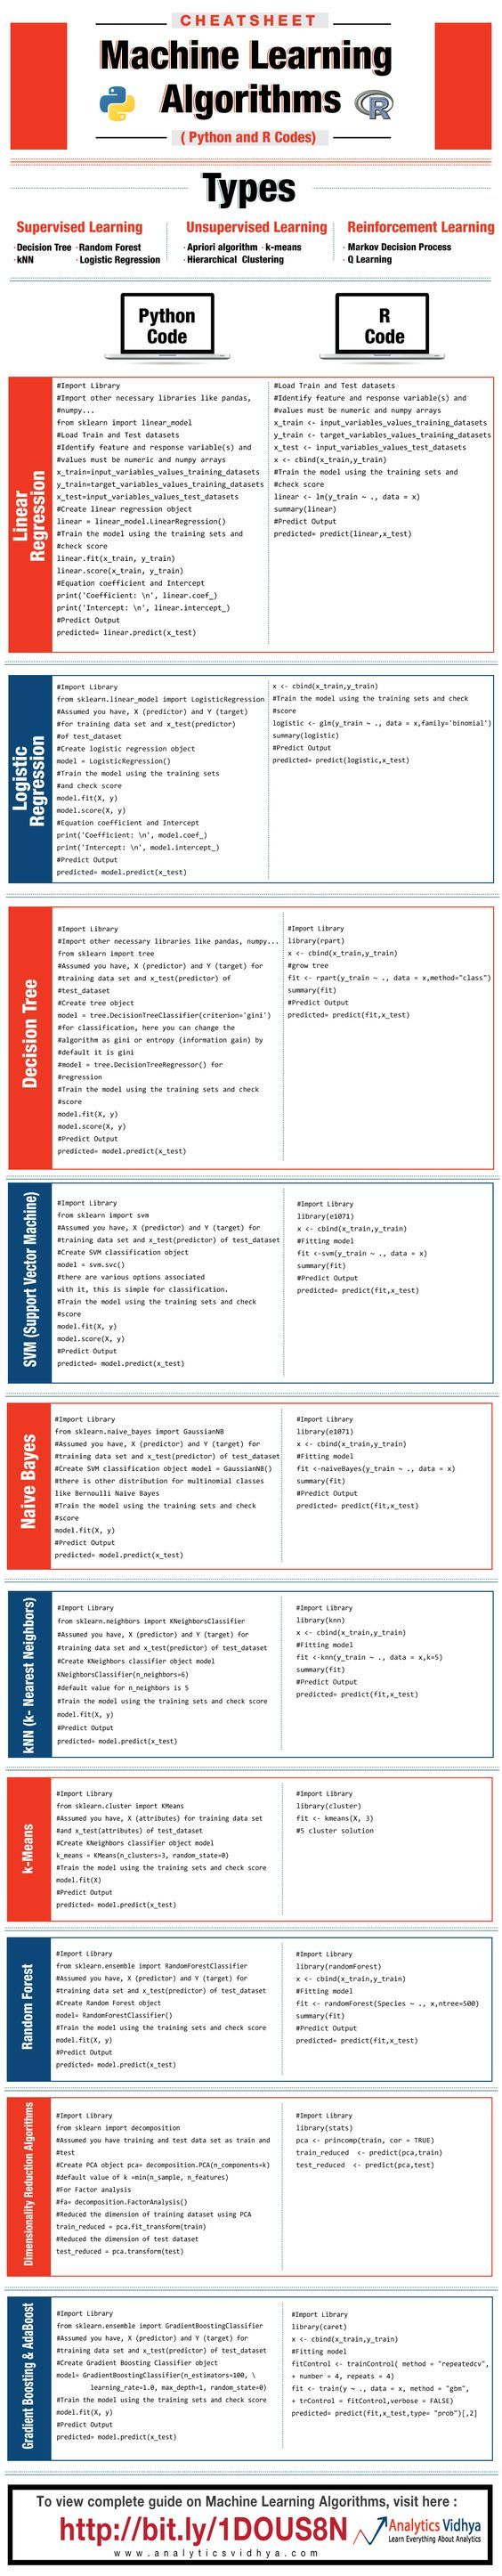 Cheat sheet machine learning algorithms data science both for r and python